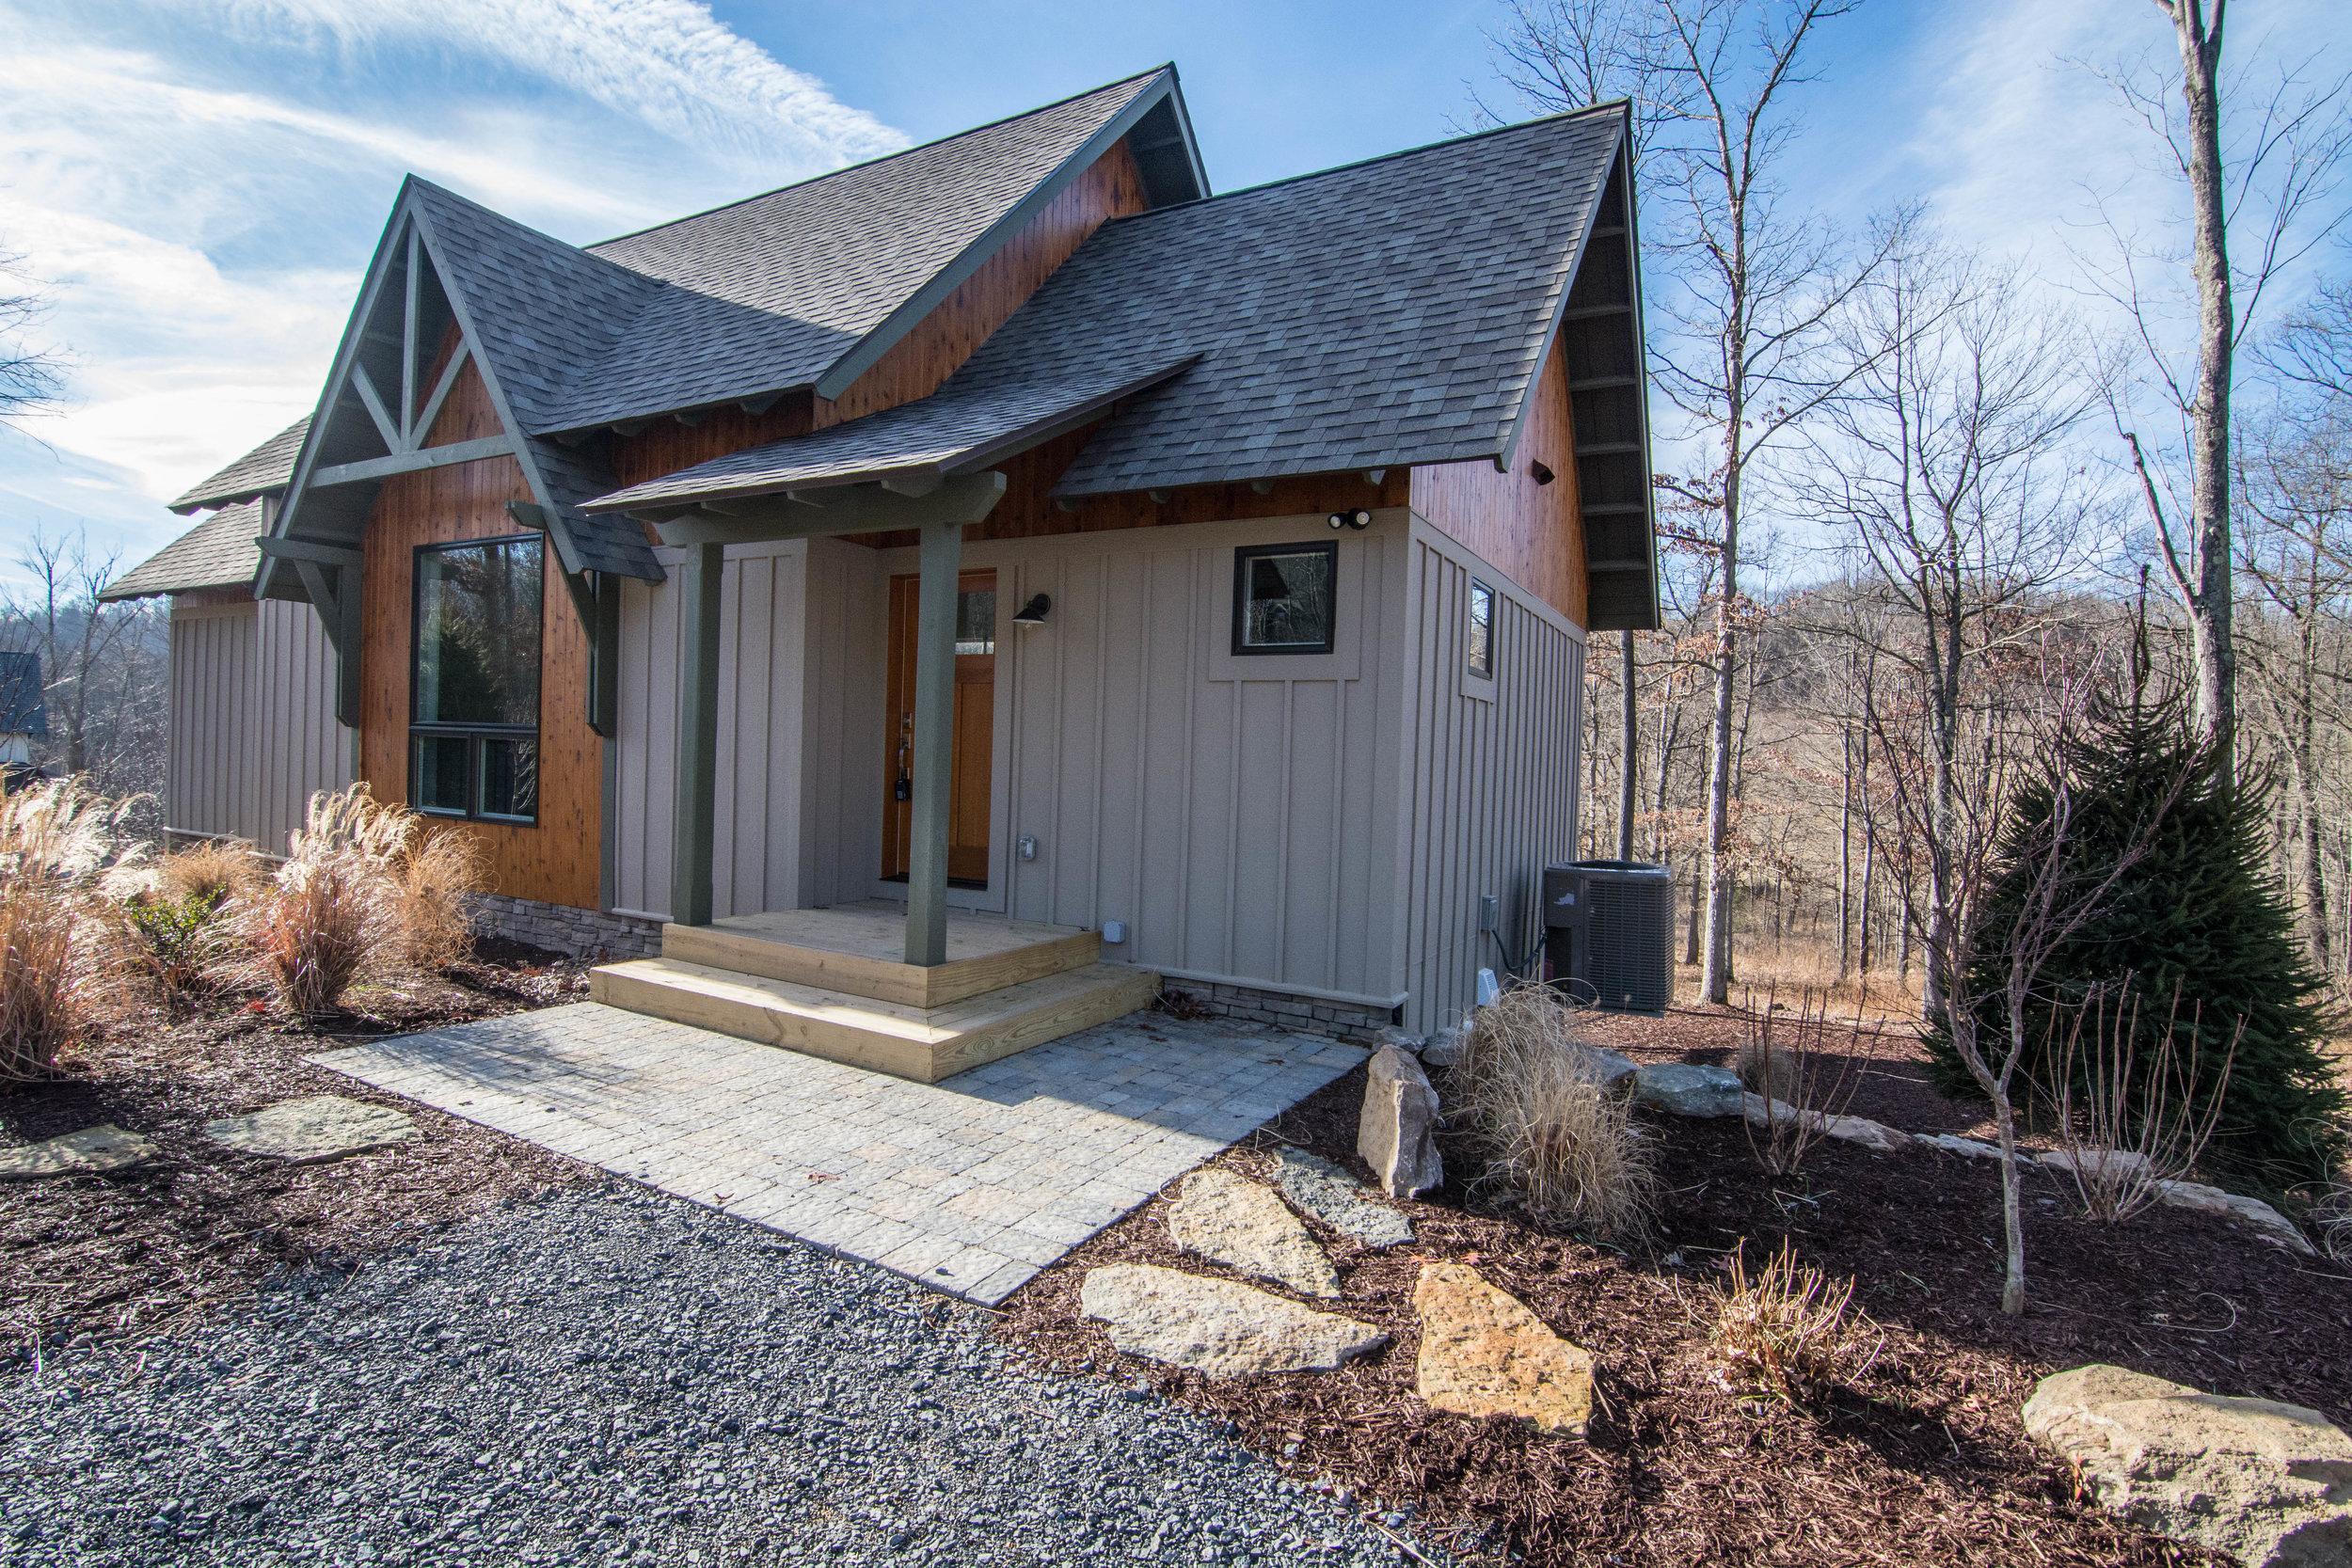 gosnell_builders_home_for_sale_ridgeview_valley07.jpg